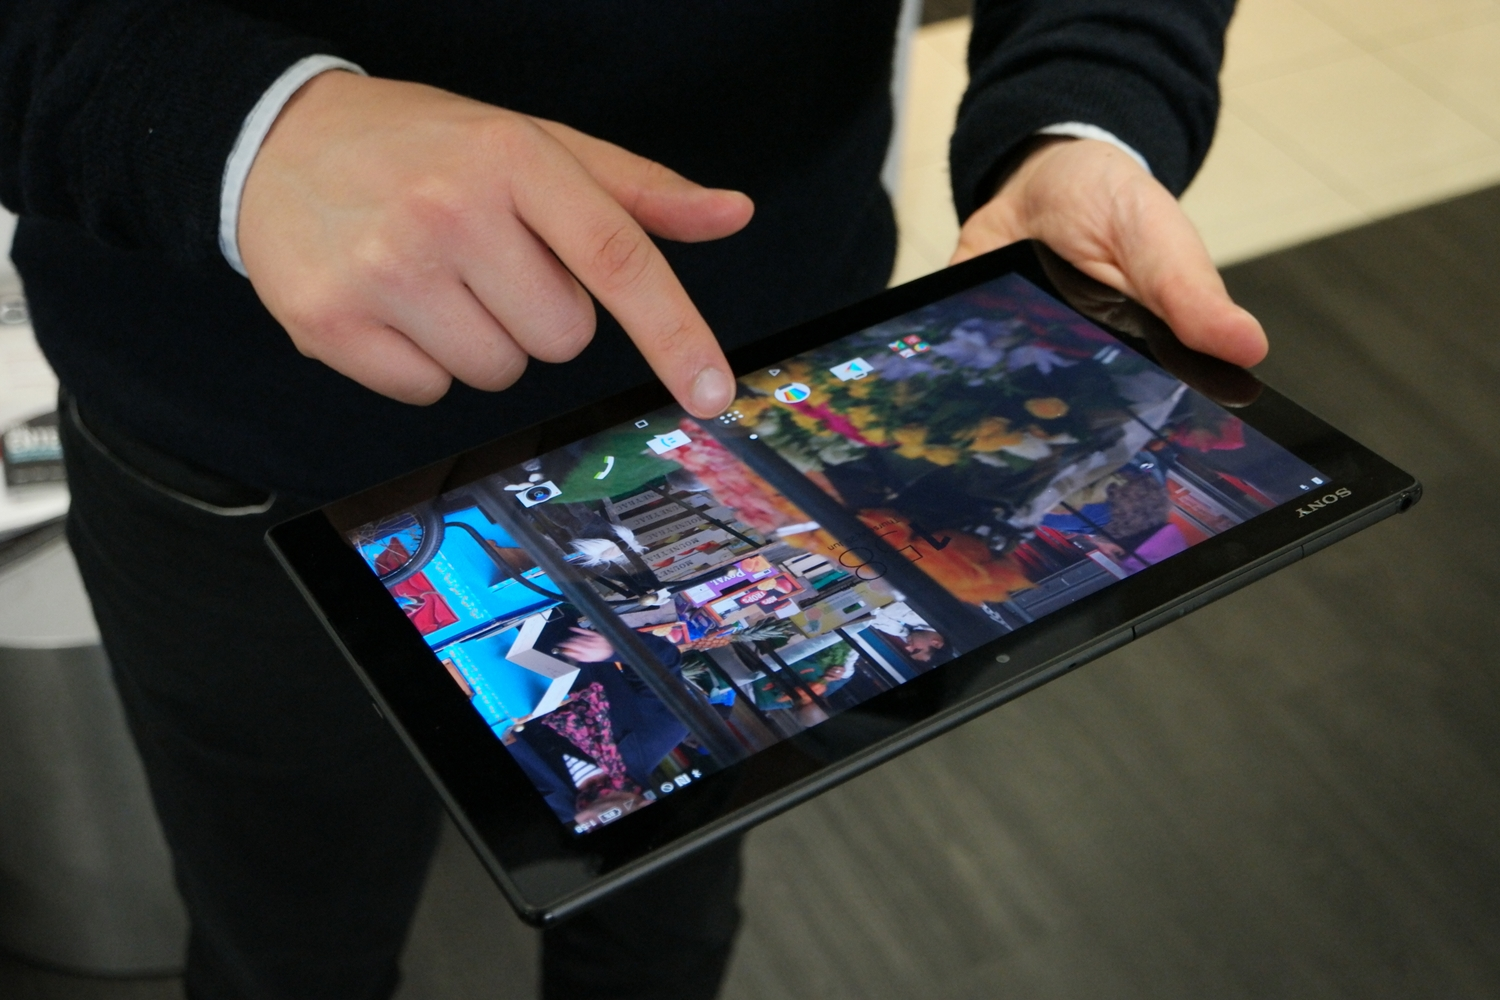 sony z4 tablet. sony xperia z4 tablet review: a 2k screen, thin profile and wide set of features make the great purchase - tablets pc world australia